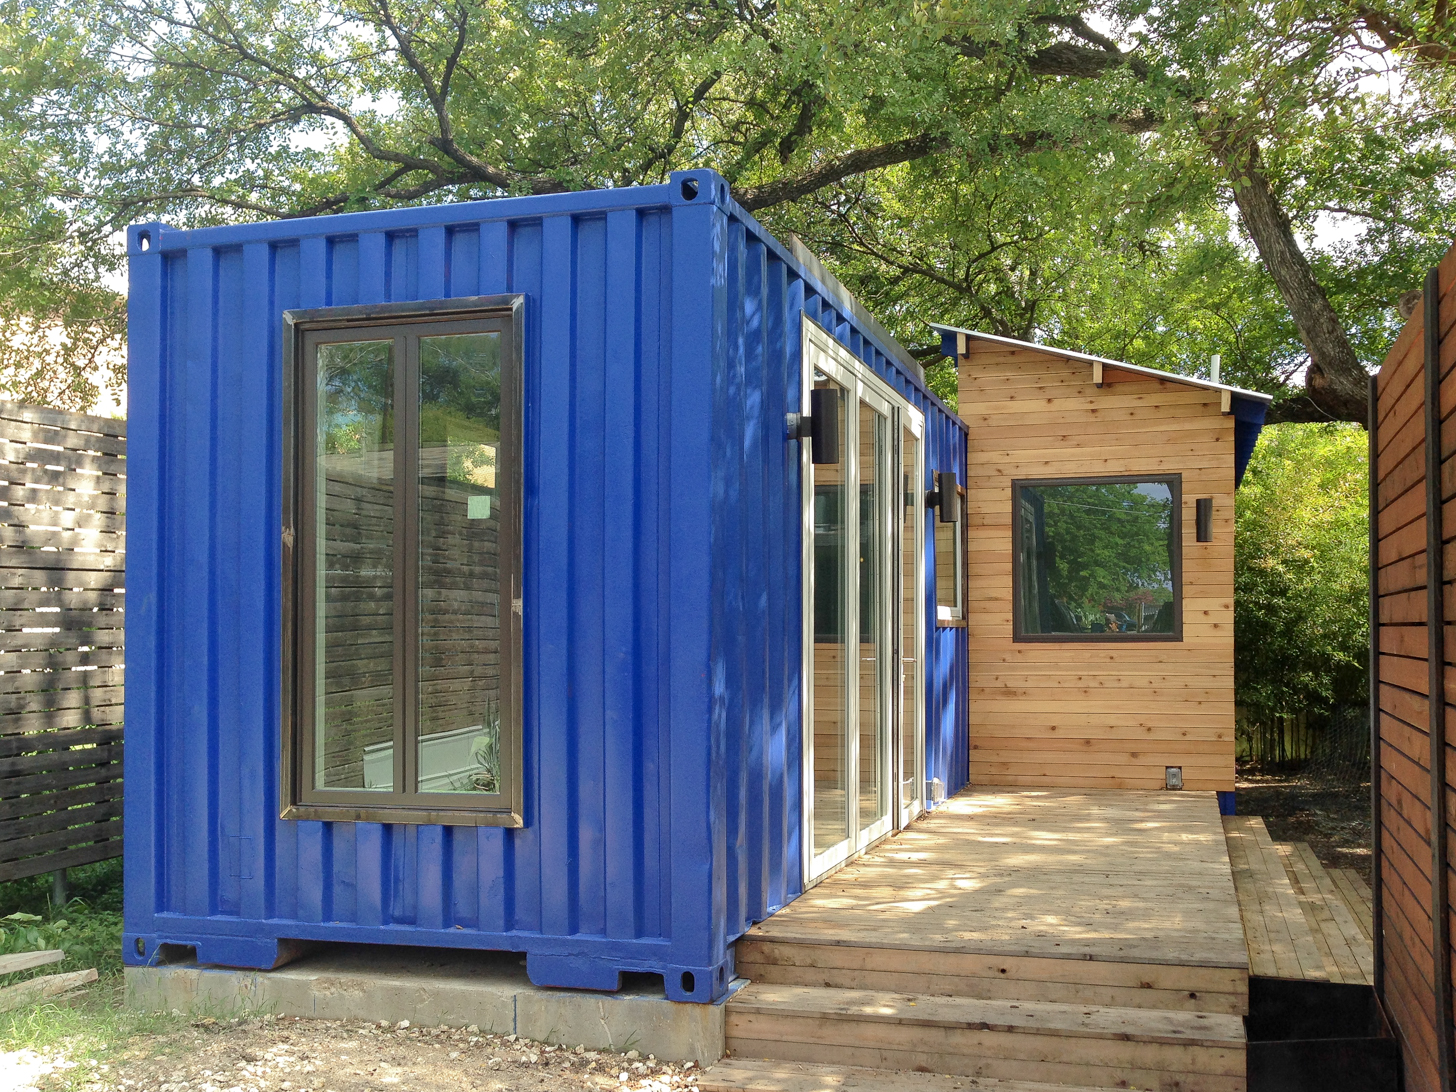 Gallery keen development groupkeen development group for Accessory dwelling unit austin